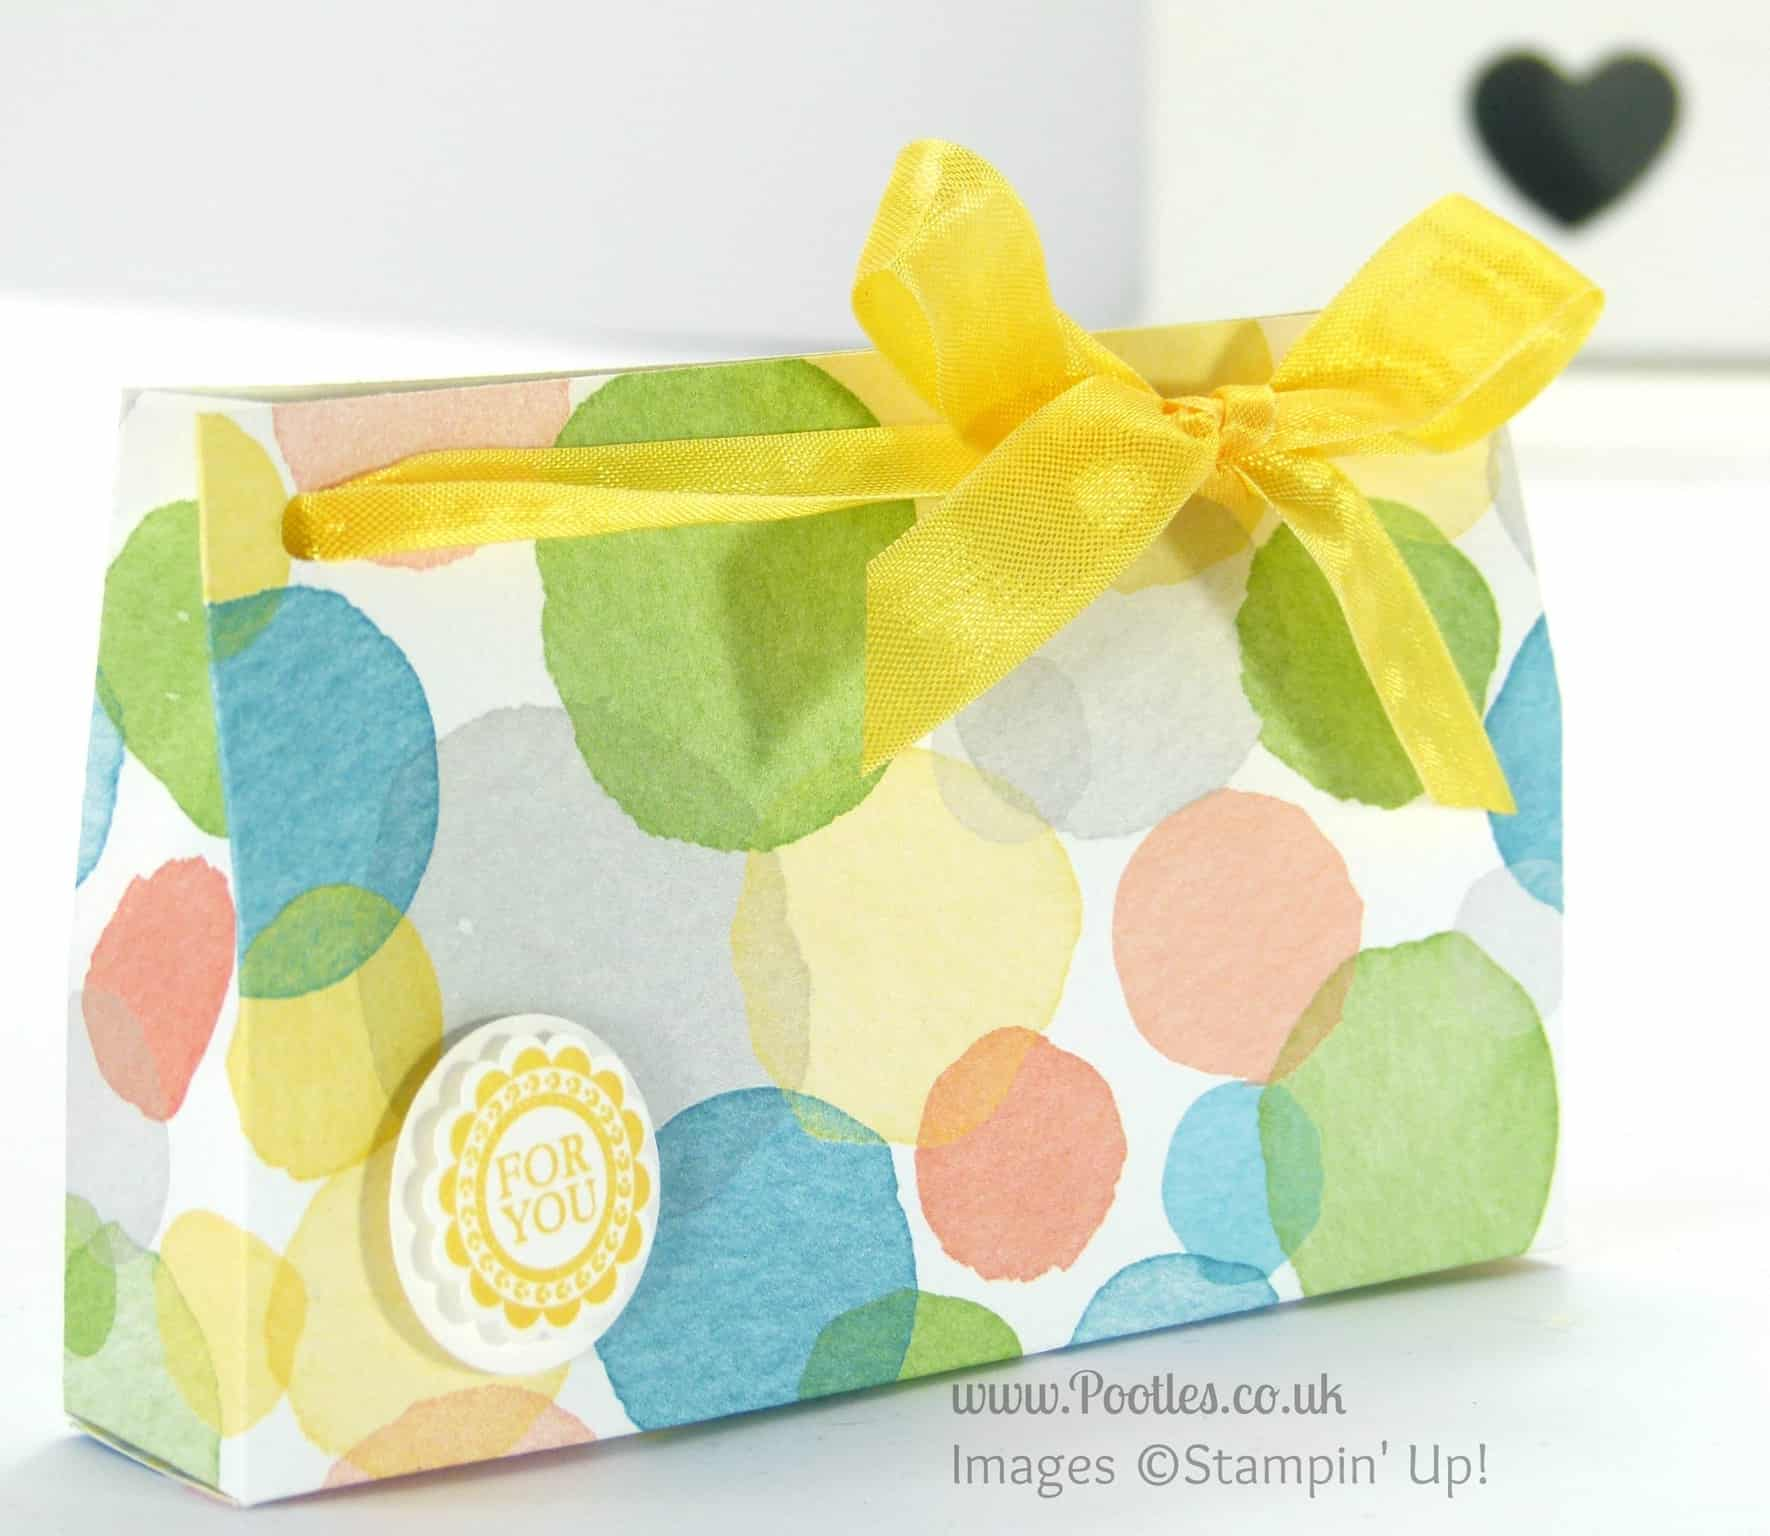 3 Bags from one sheet of Stampin' Up! UK Designer Series Paper (Tutorial!) 4x12 bag